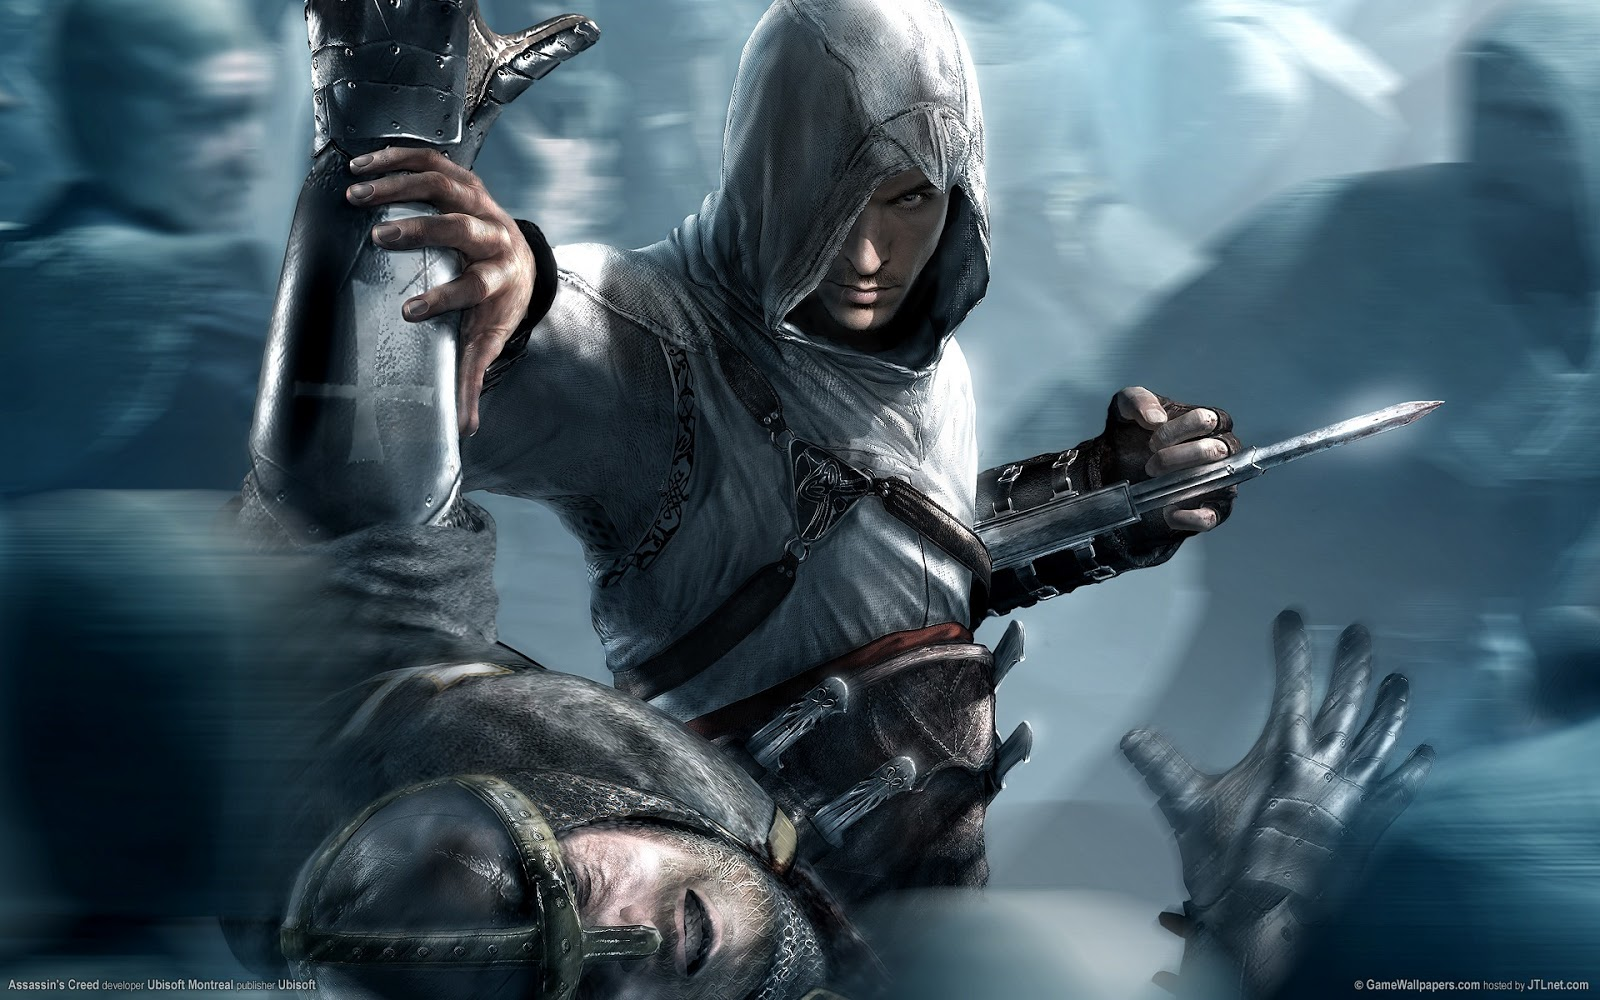 game wallpapers hd assassins creed brotherhood game wallpapers hd 1600x1000